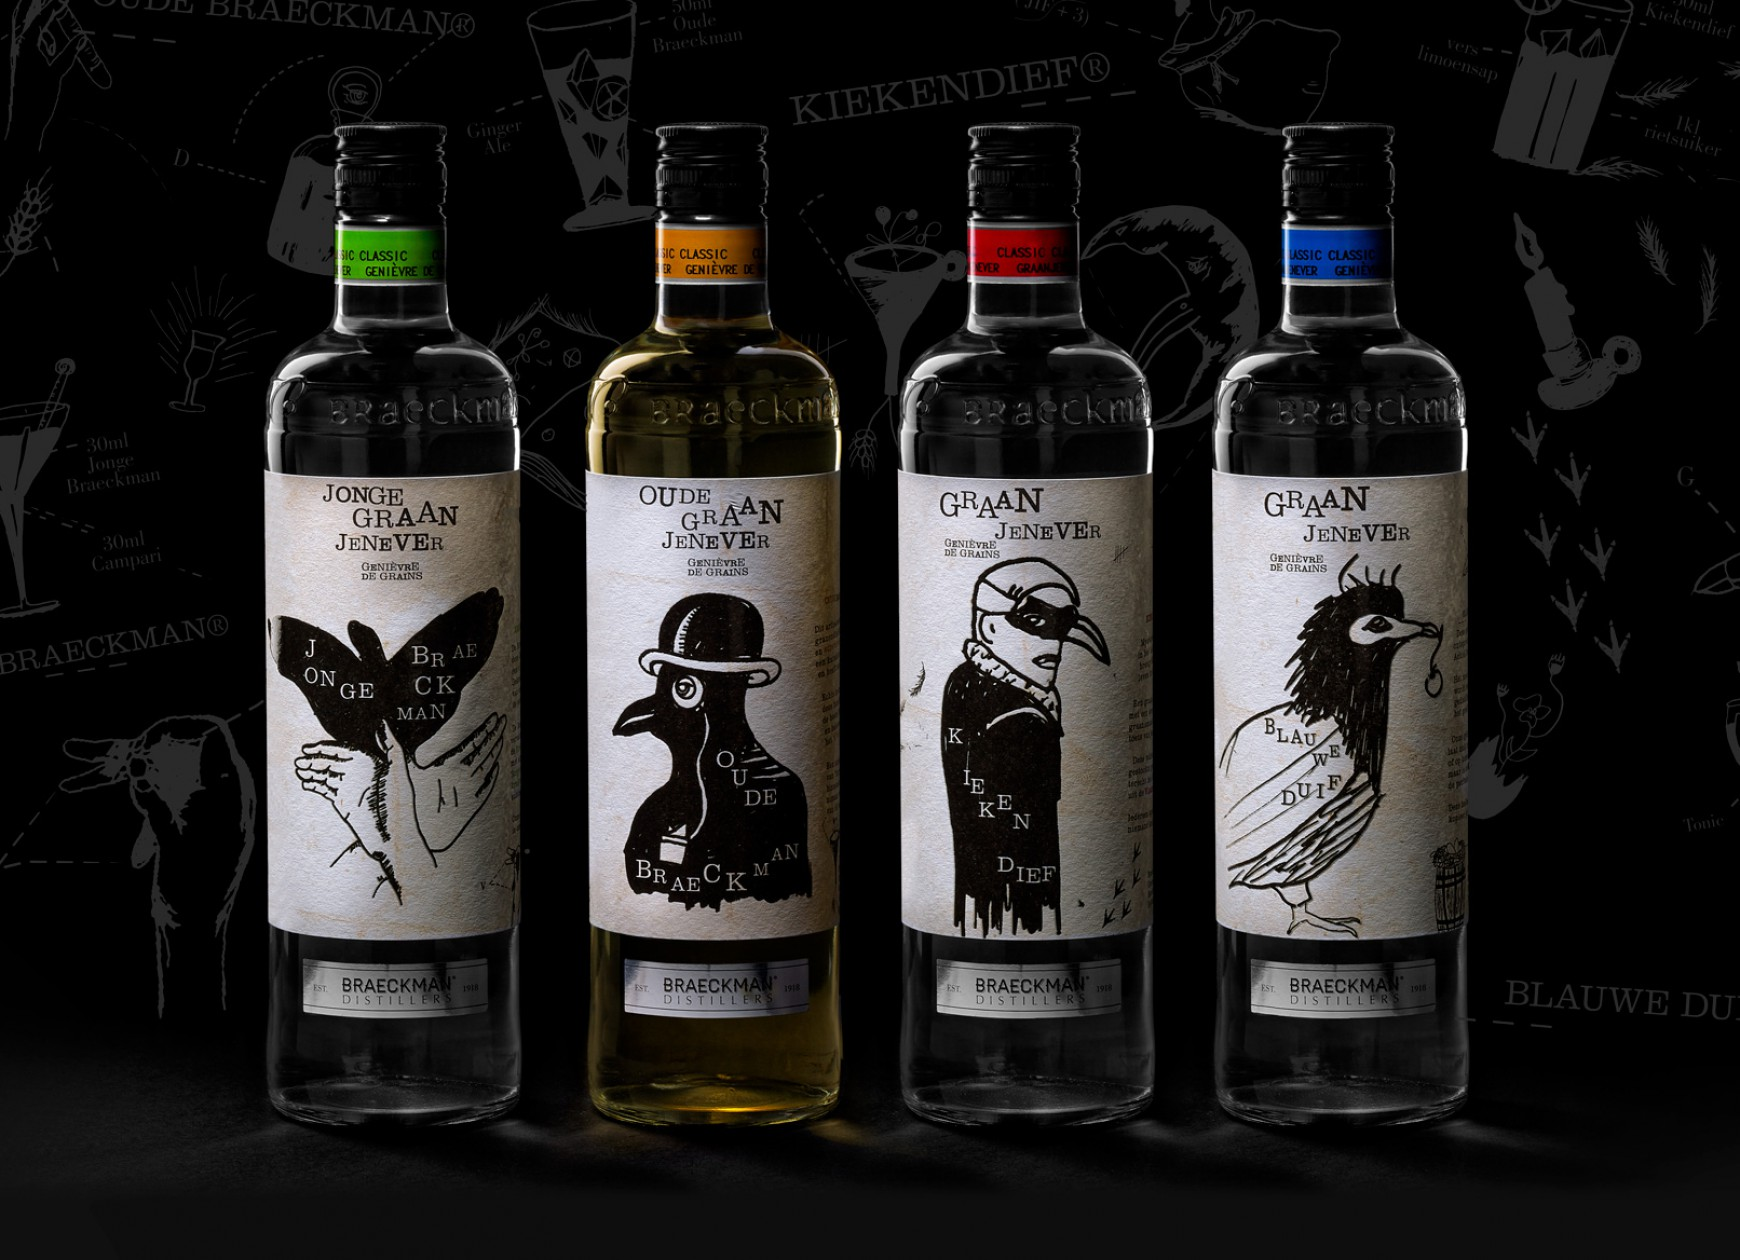 Quatre Mains package design - Package design braeckman, genever, quatre mains